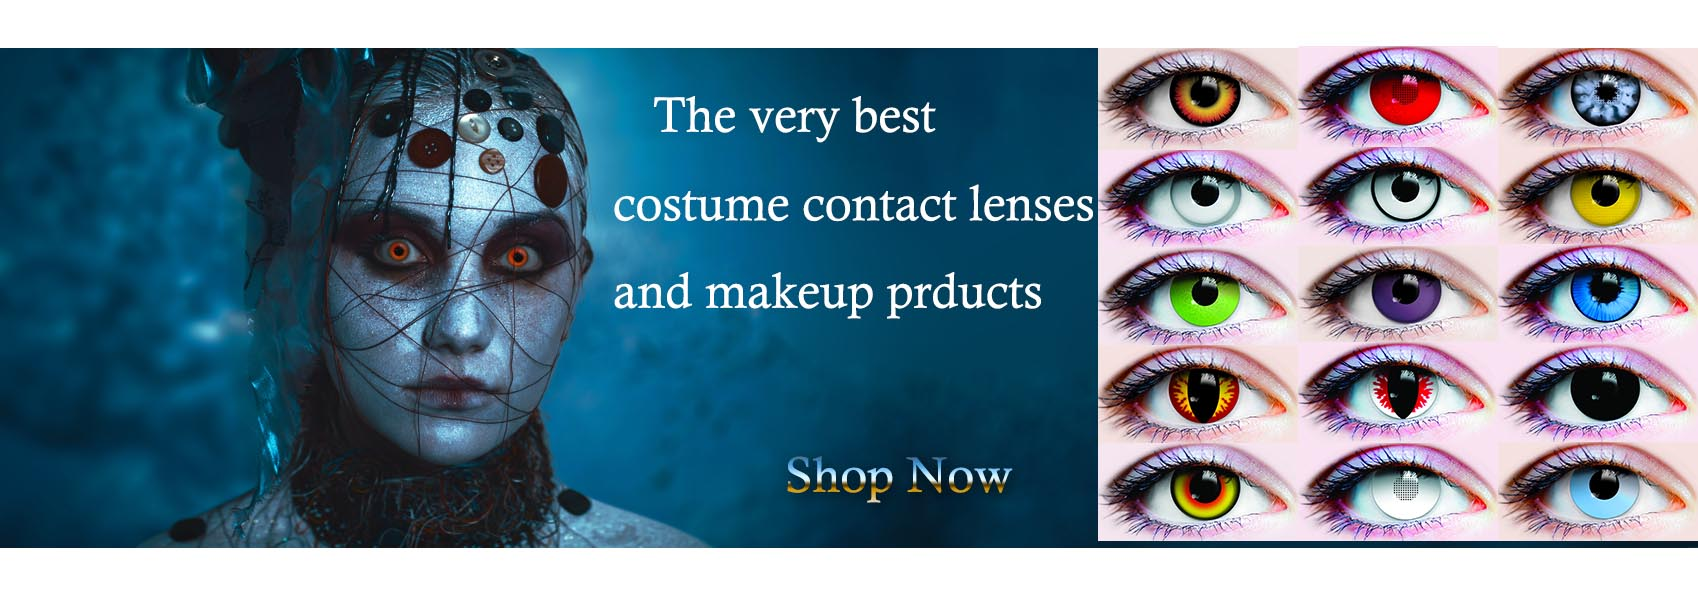 Halloween costume contact lenses